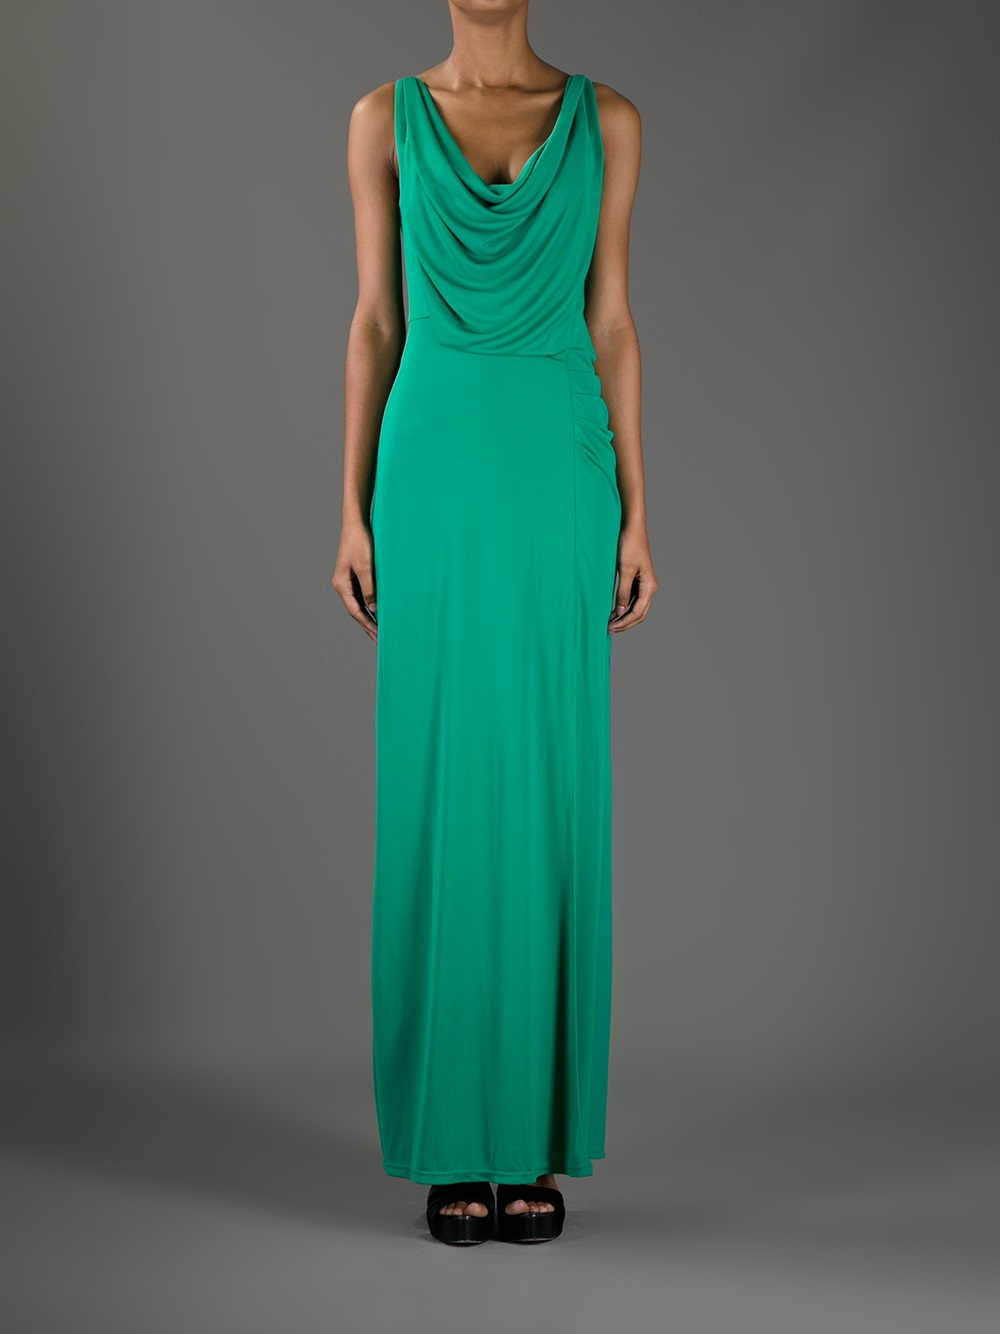 Lyst - Bcbgmaxazria Cowl Neck Maxi Dress in Green